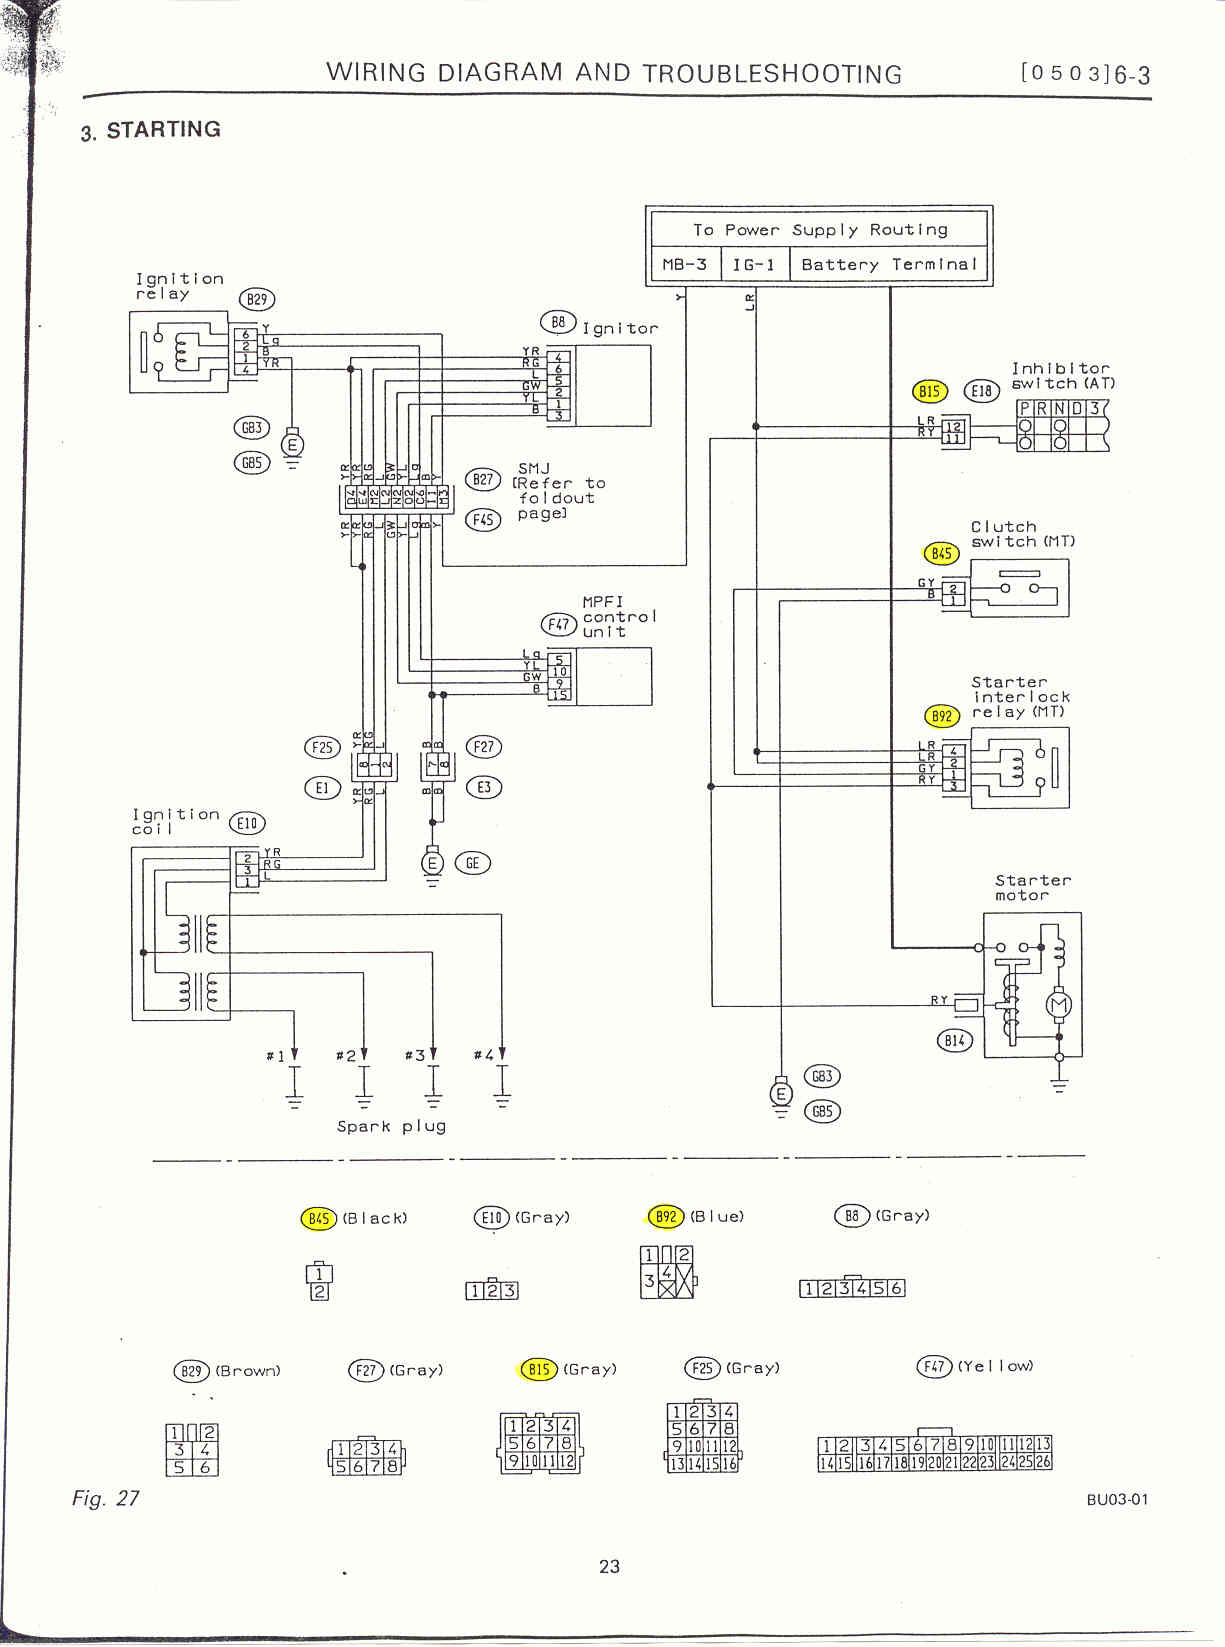 2006 subaru impreza wiring diagram data flow for payroll management system 93 legacy get free image about